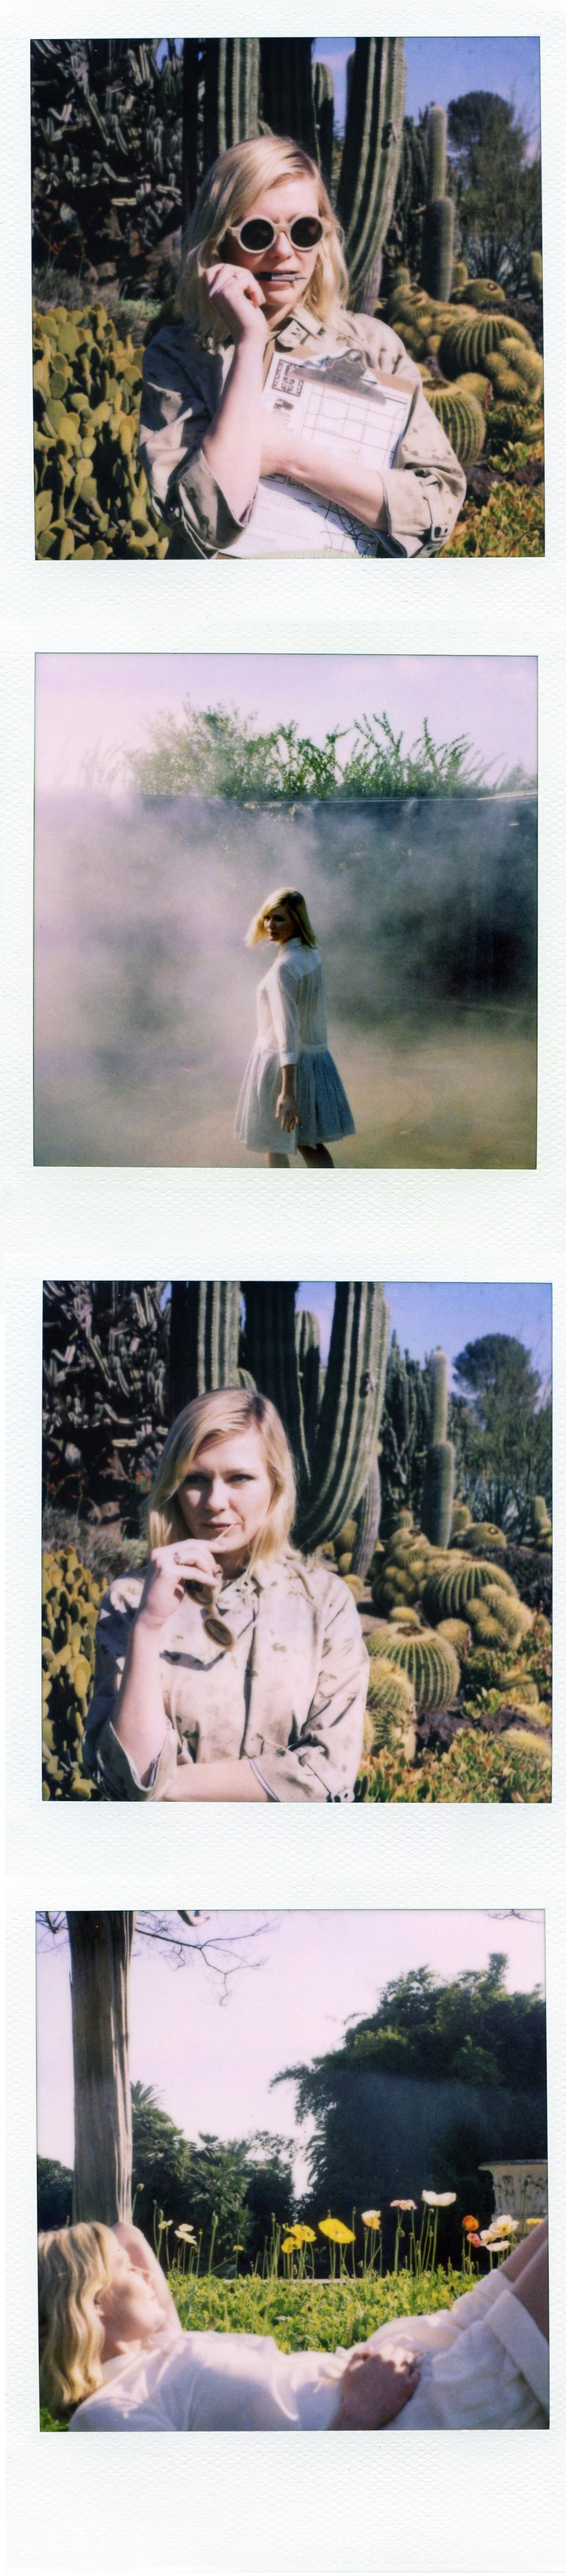 Band of Outsiders + Kirsten Dunst + Polaroid